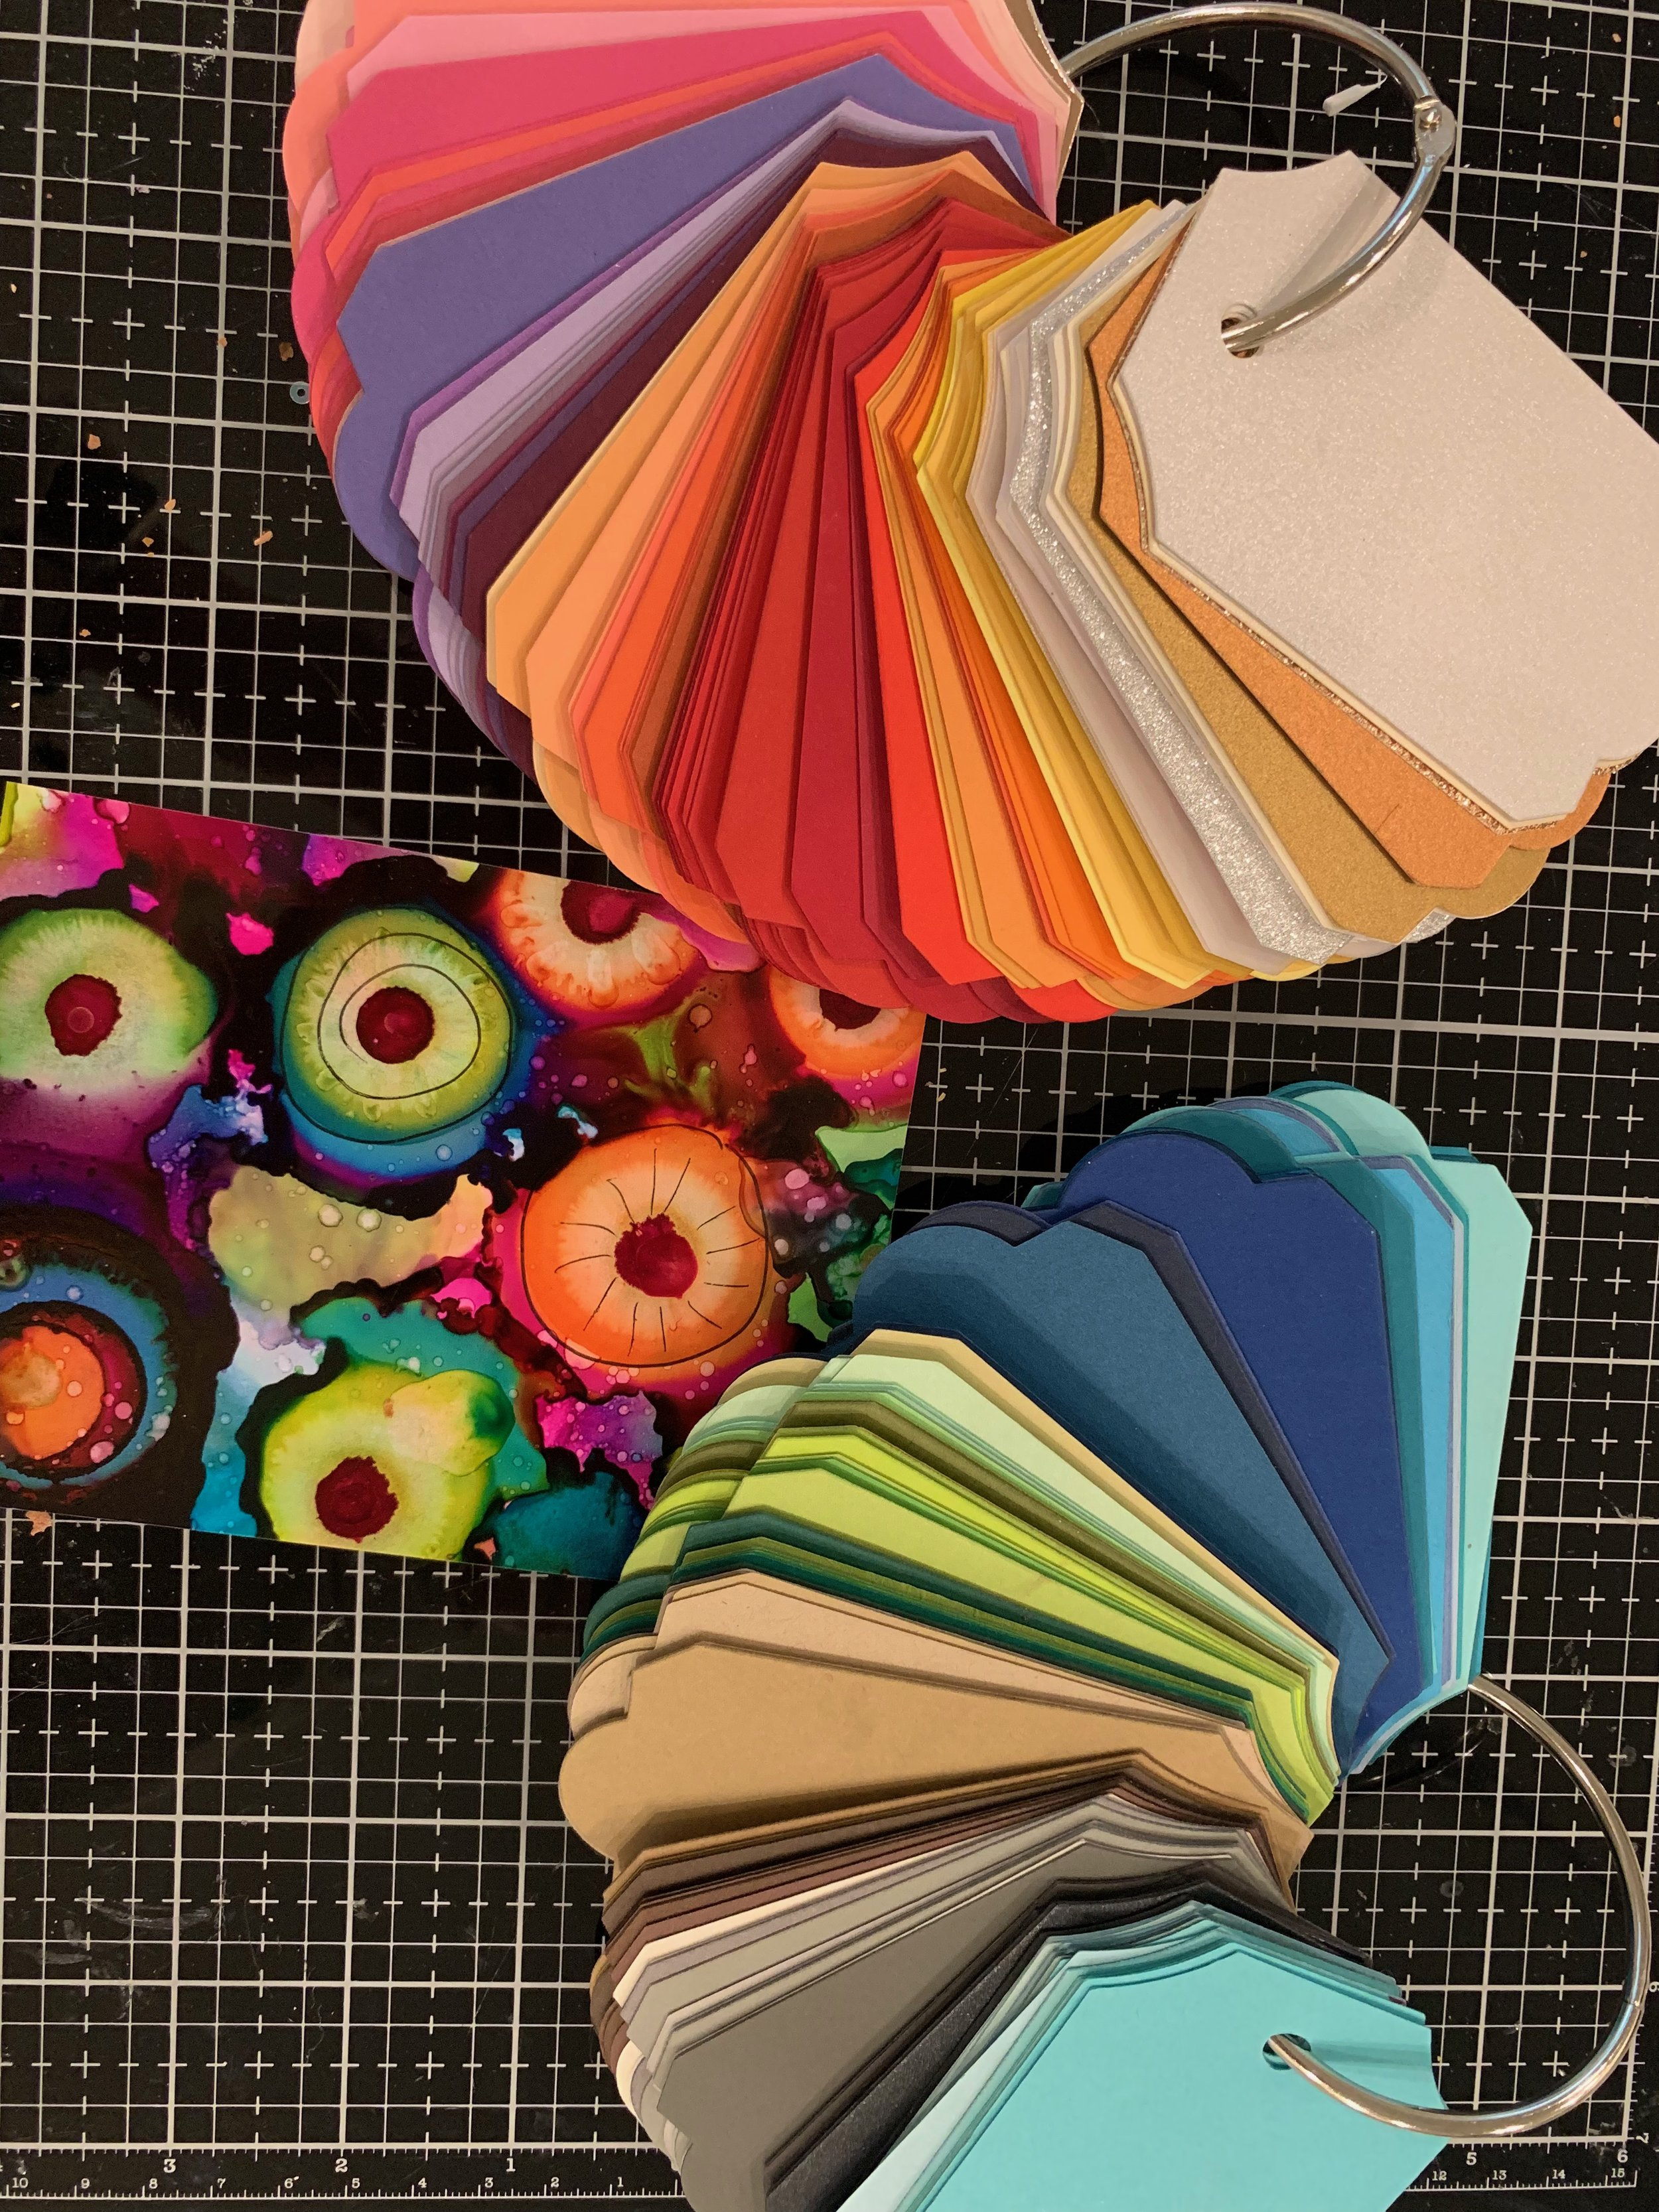 Choosing the correct color of cardstock